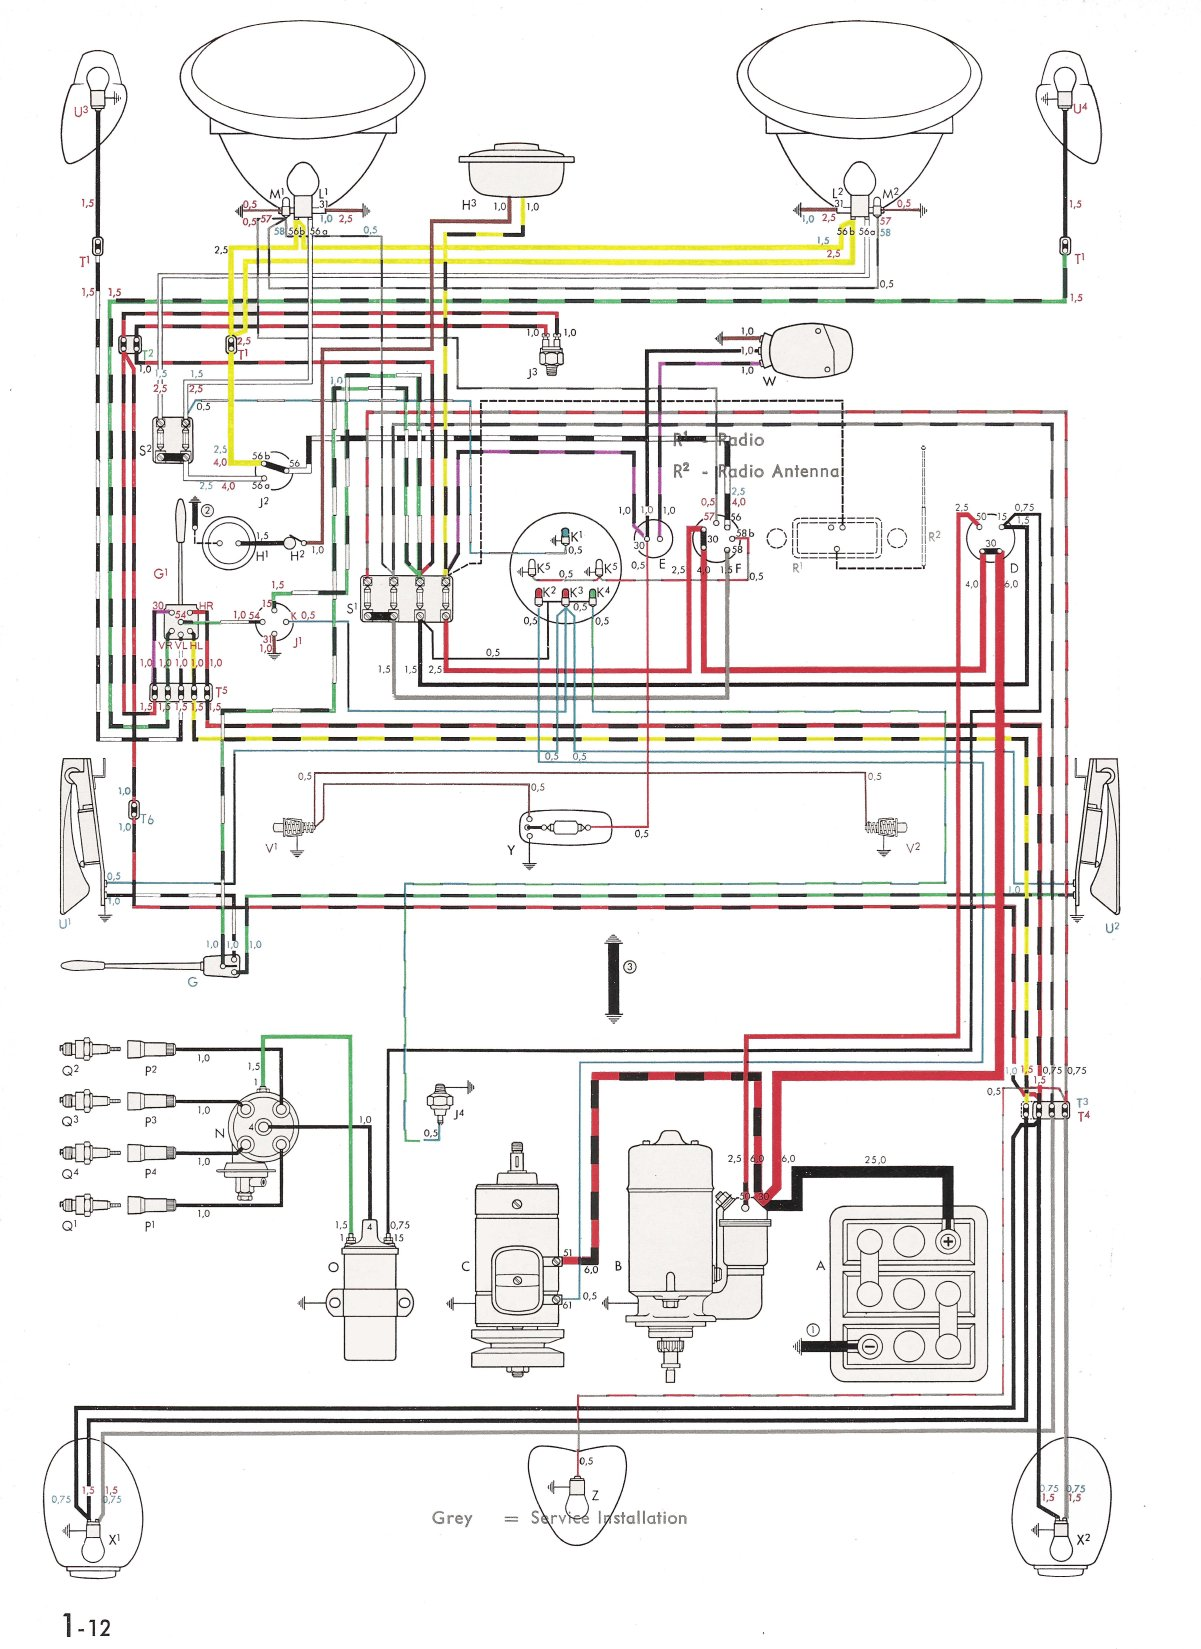 thesamba com type 1 wiring diagrams rh thesamba com wiring diagram vw beetle alternator wiring diagram vw beetle 1969